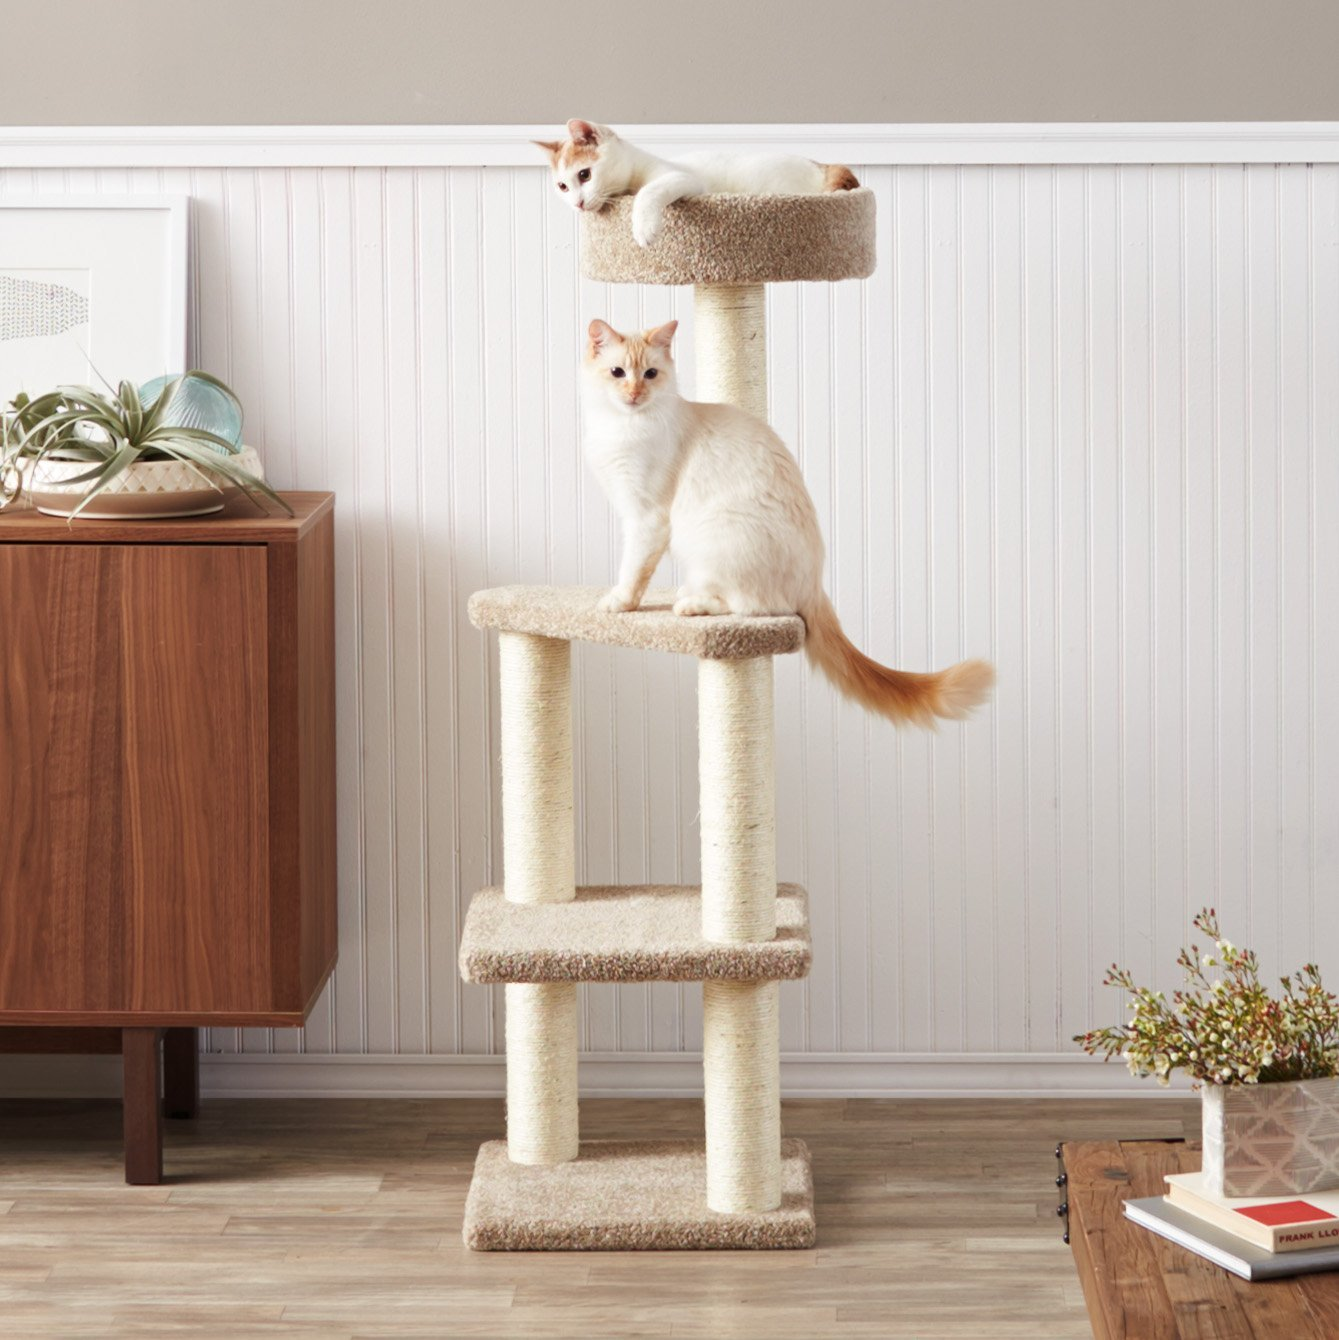 Nice Cat Furniture Purrrfect Cat Wall Shelves For Climbing Cats And Kitties